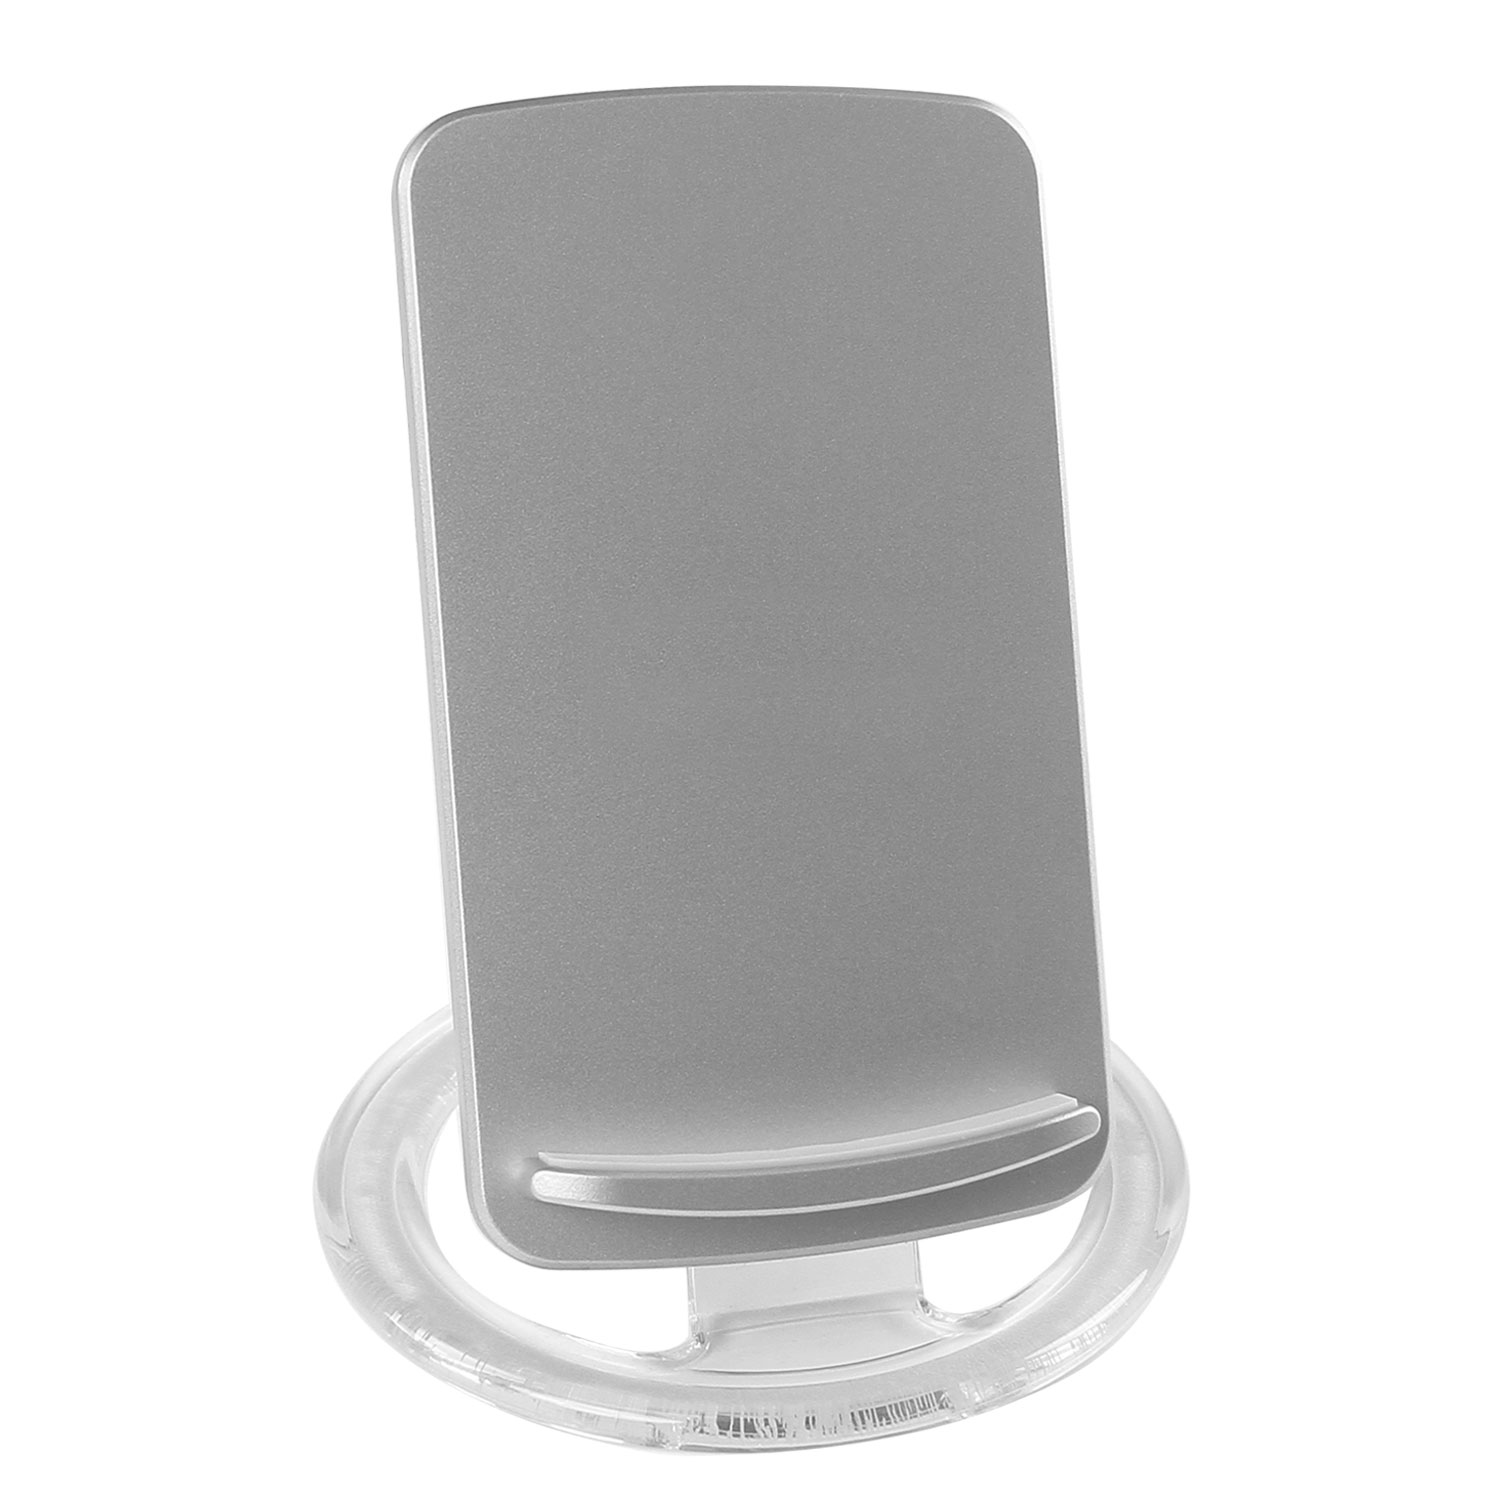 Samsung Galaxy S9 Wireless Desktop Charger Silver